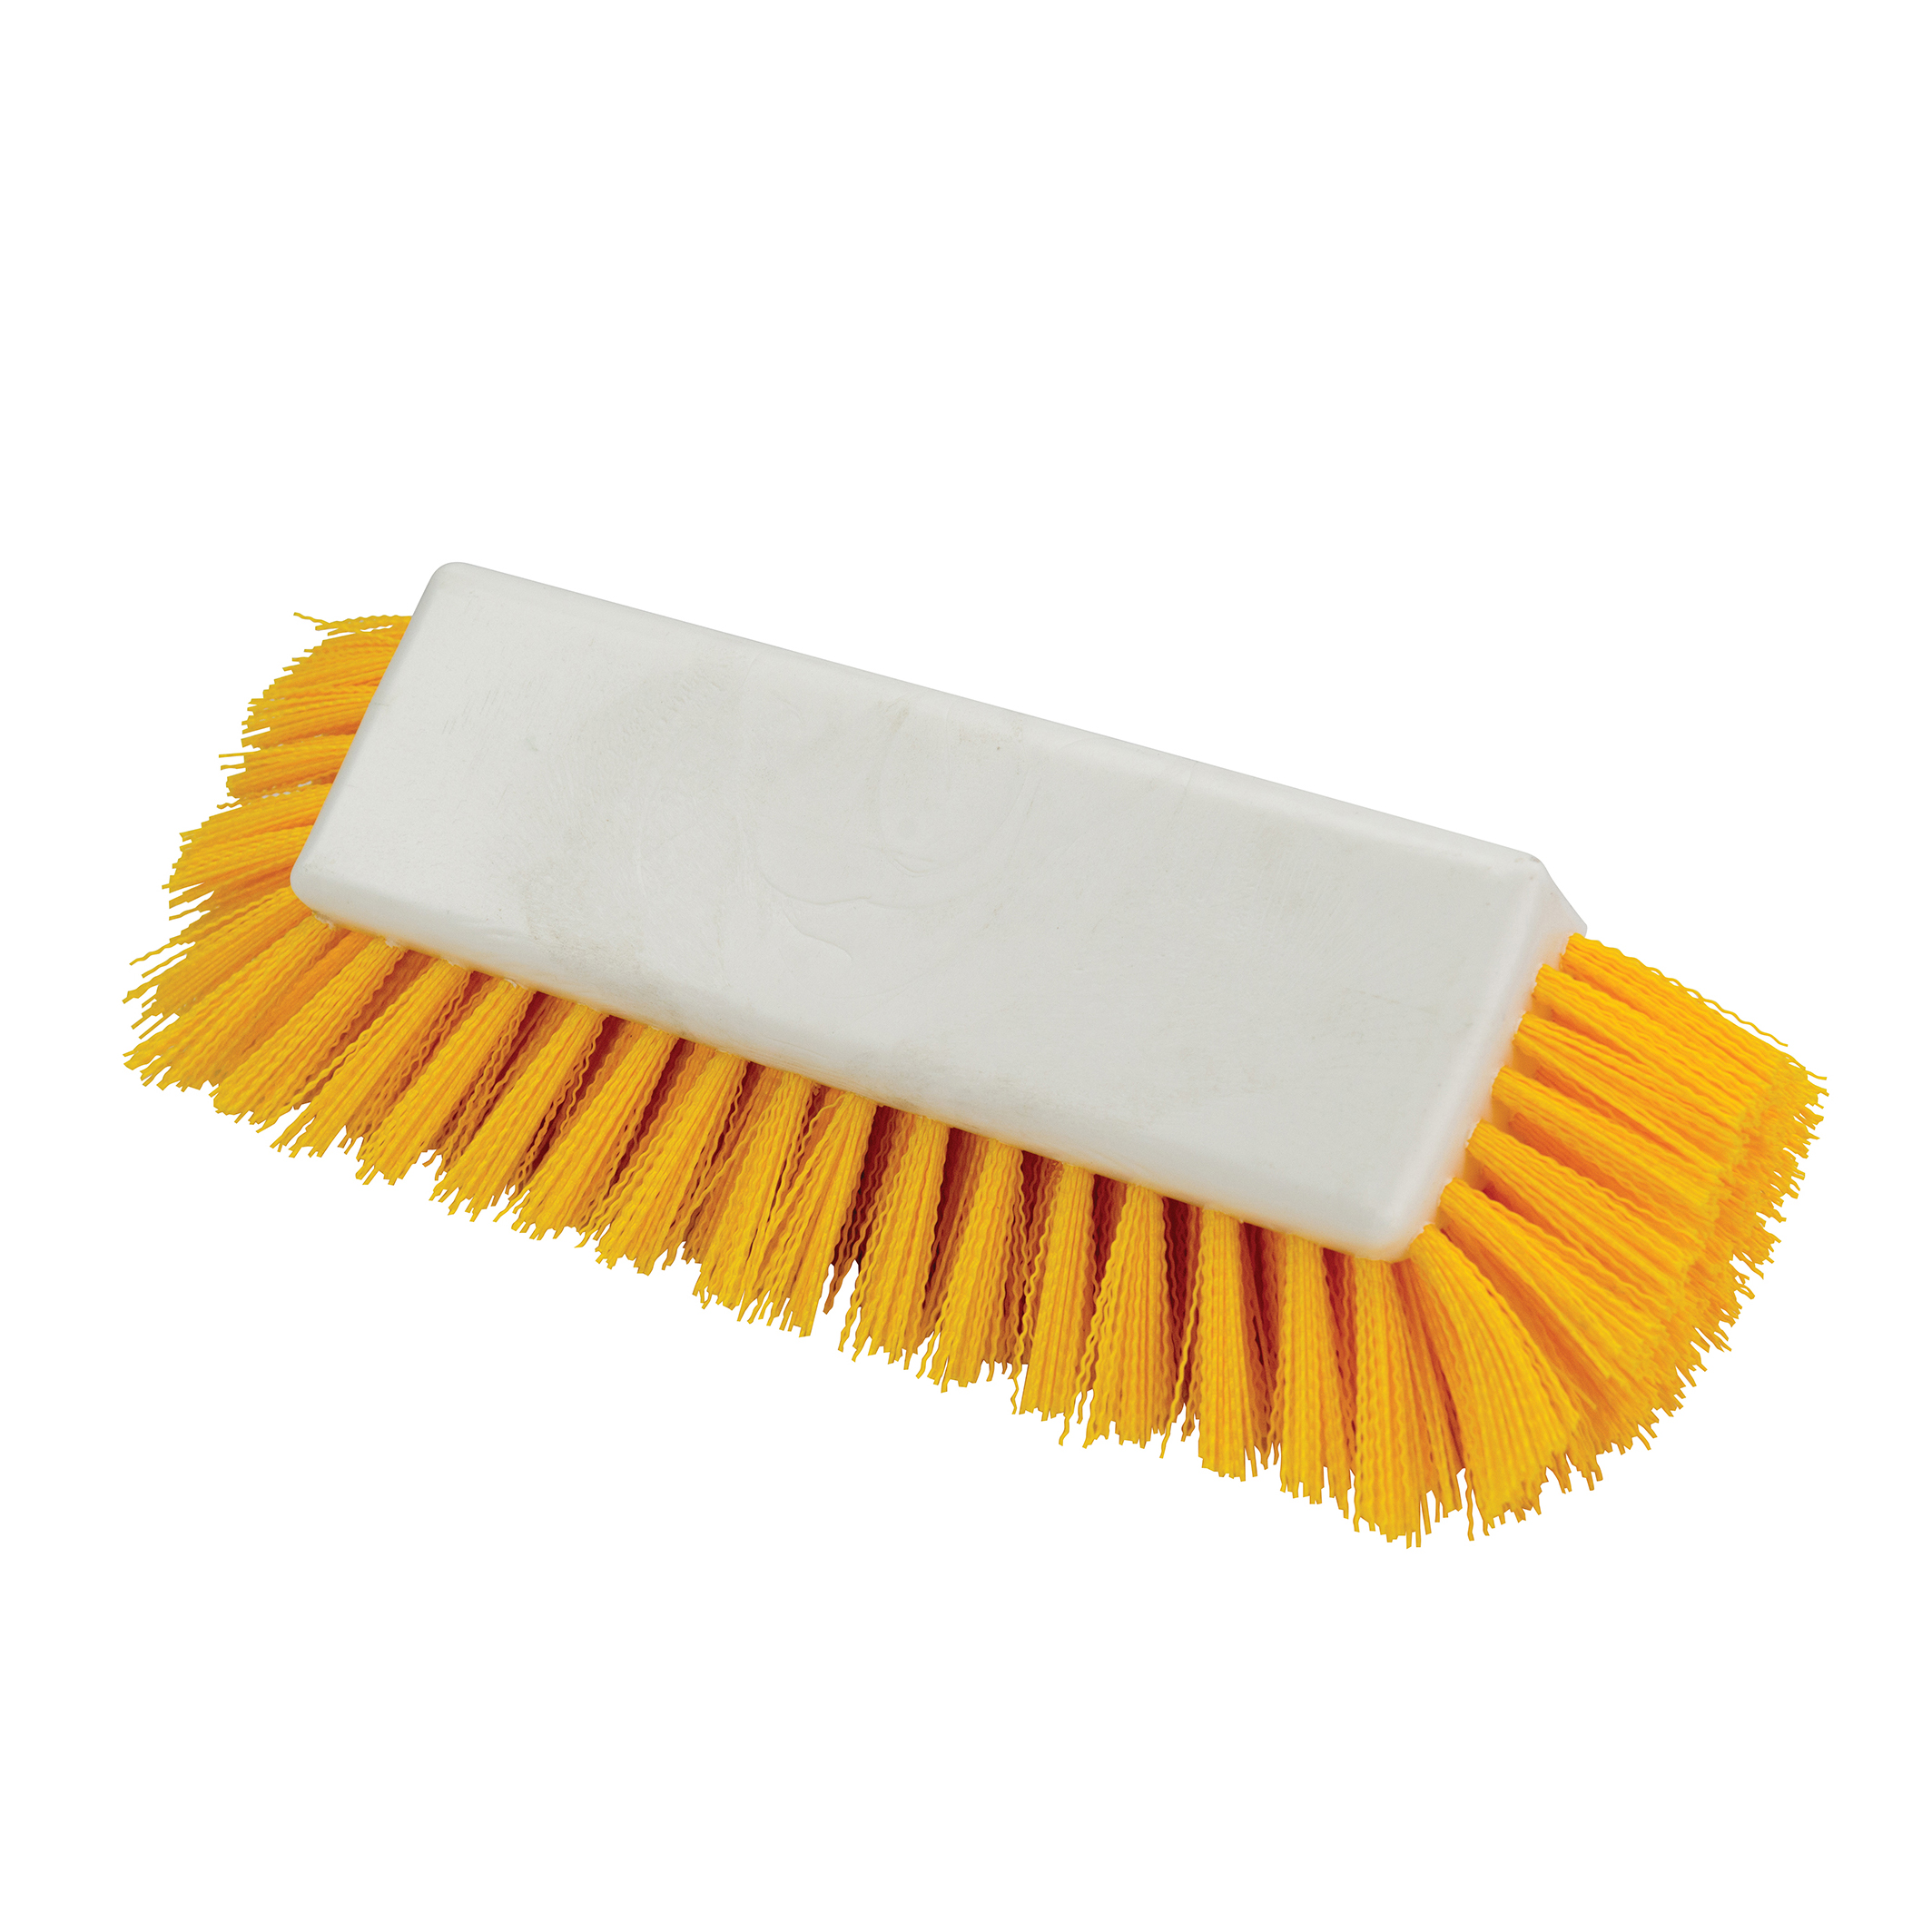 Winco BRF-12Y brush, floor